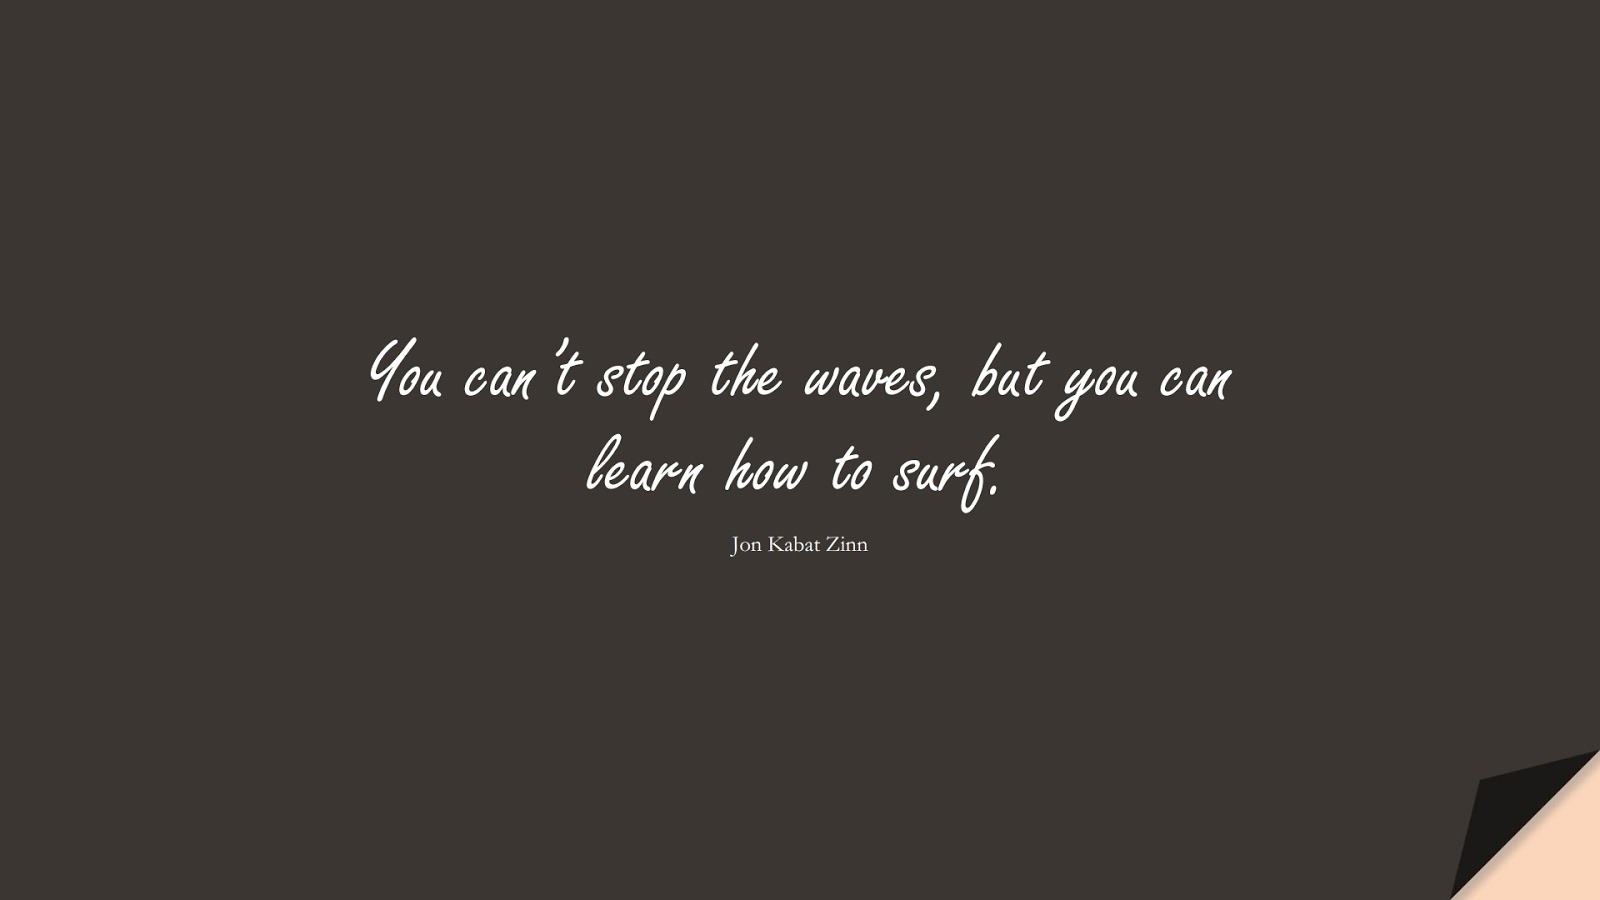 You can't stop the waves, but you can learn how to surf. (Jon Kabat Zinn);  #PositiveQuotes